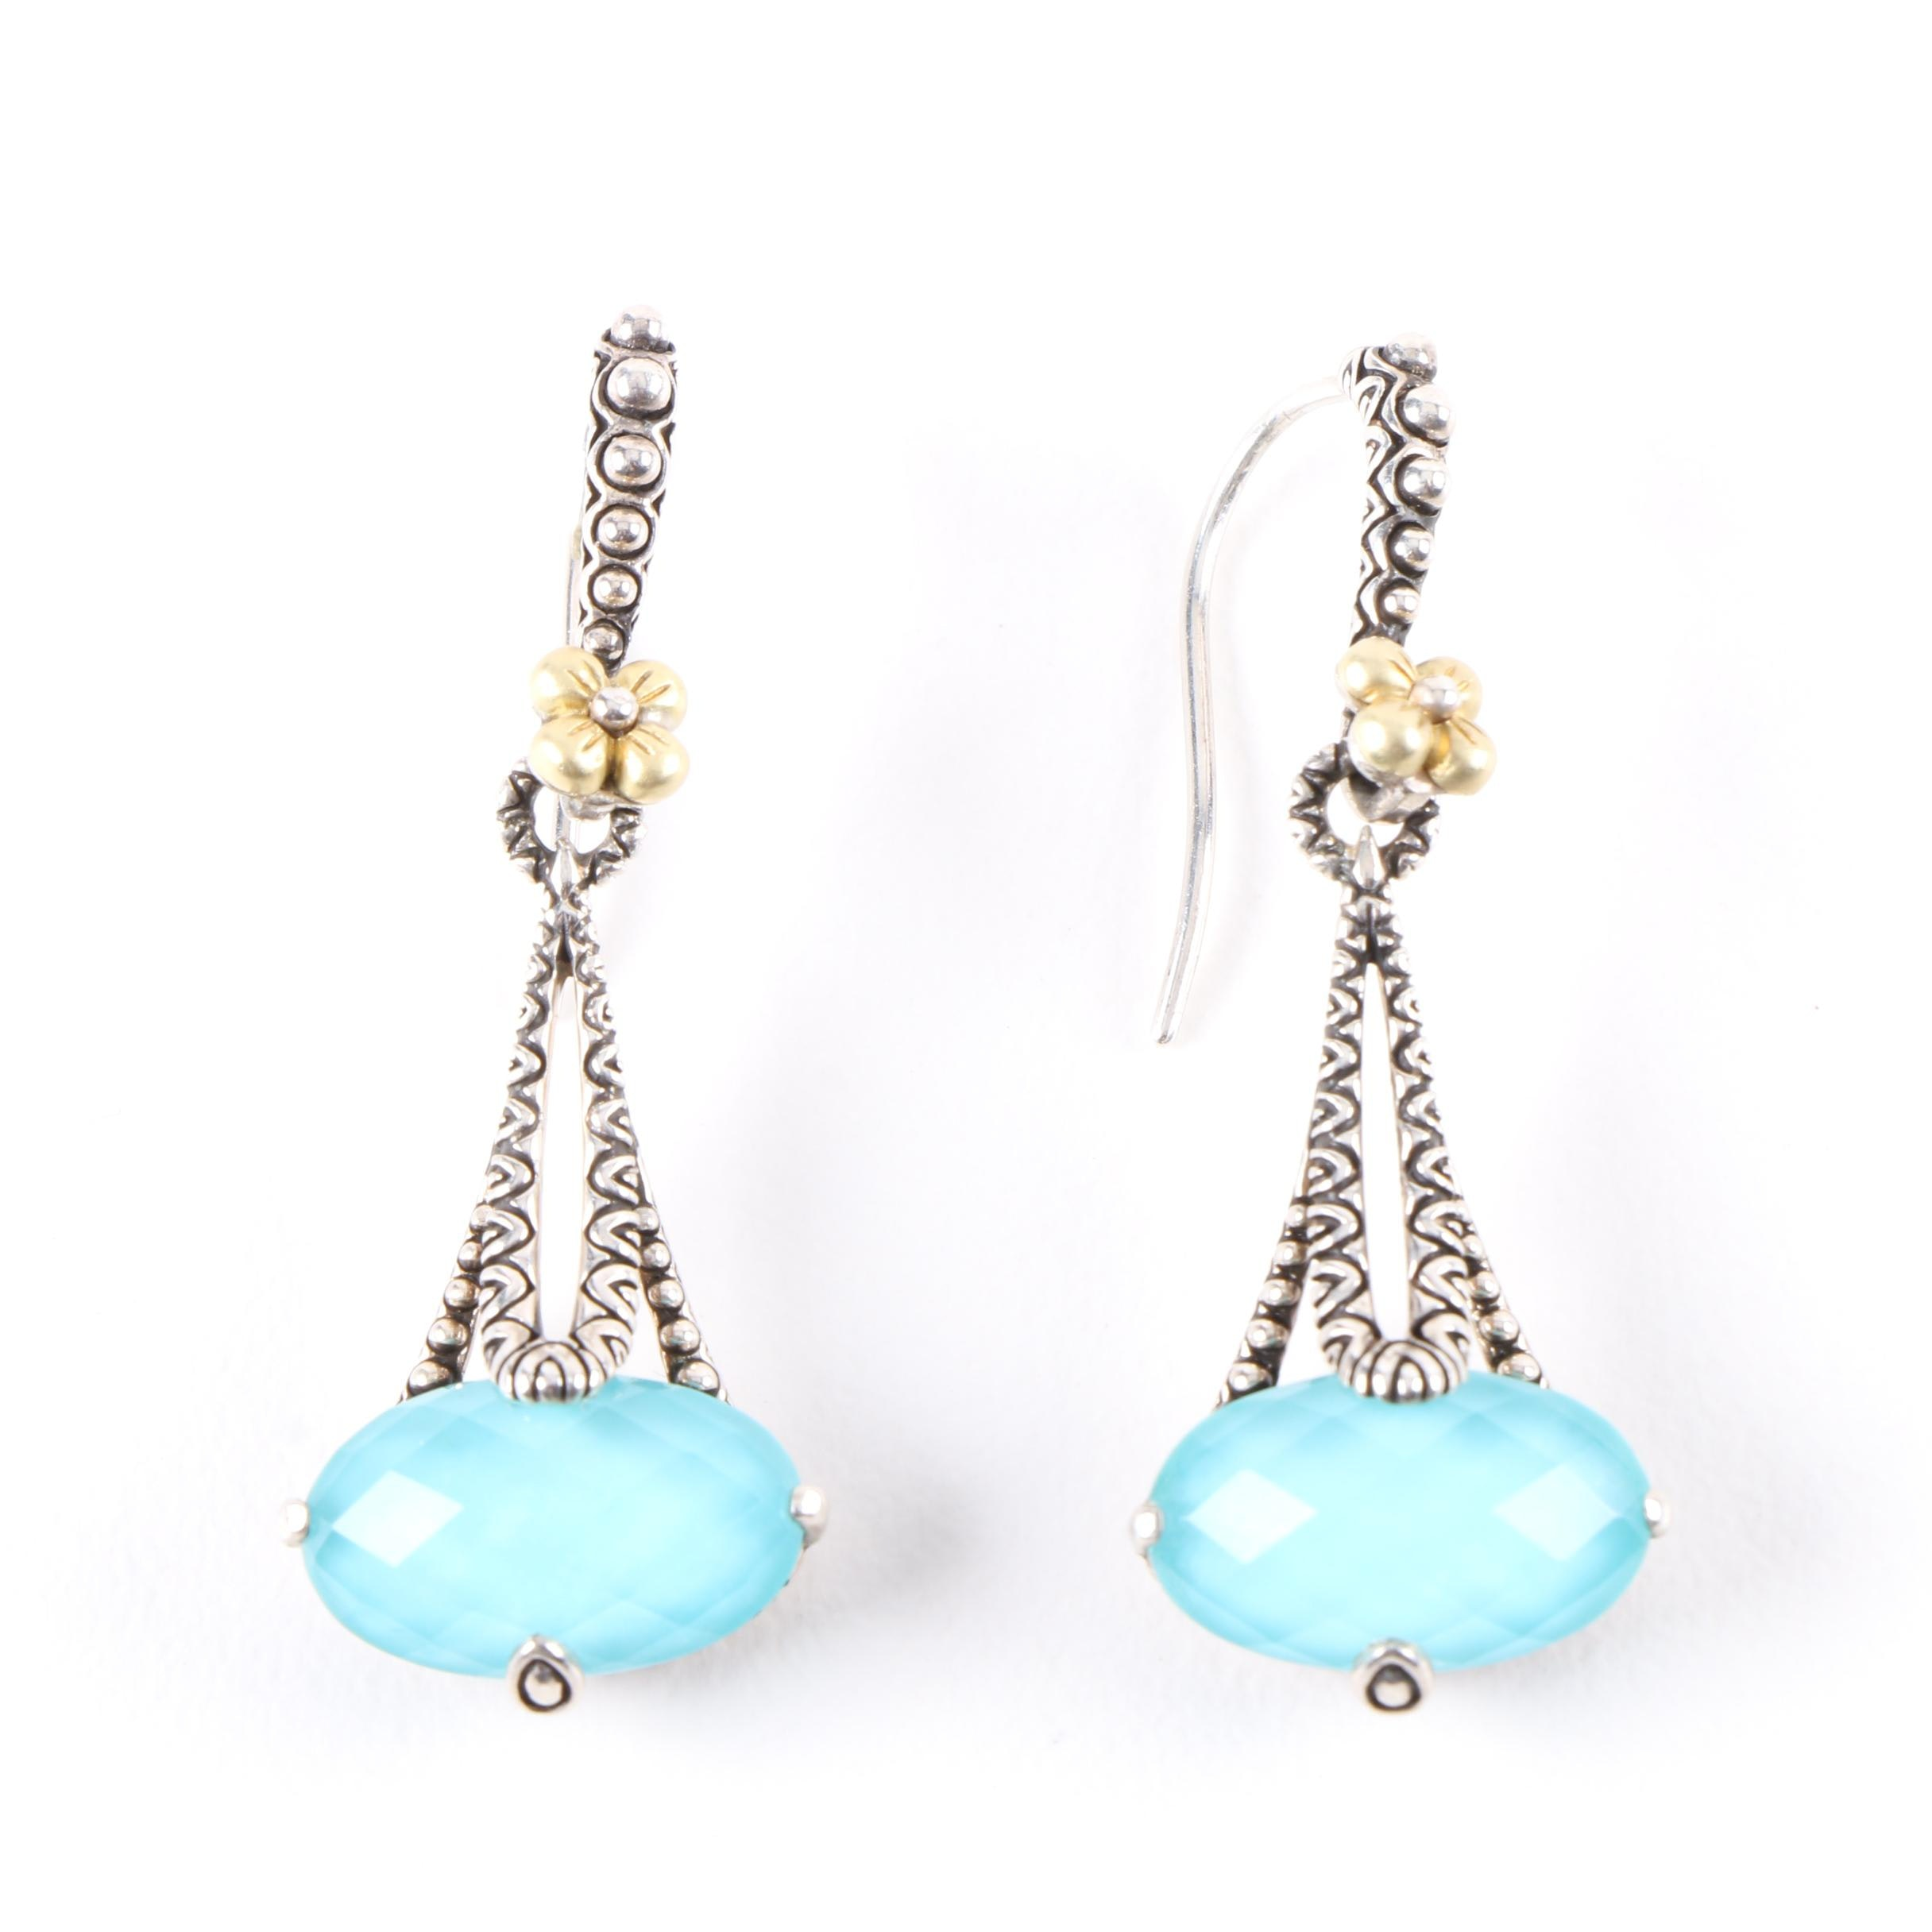 Barbara Bixby Sterling Silver and 18K Yellow Gold Turquoise and Quartz Earrings